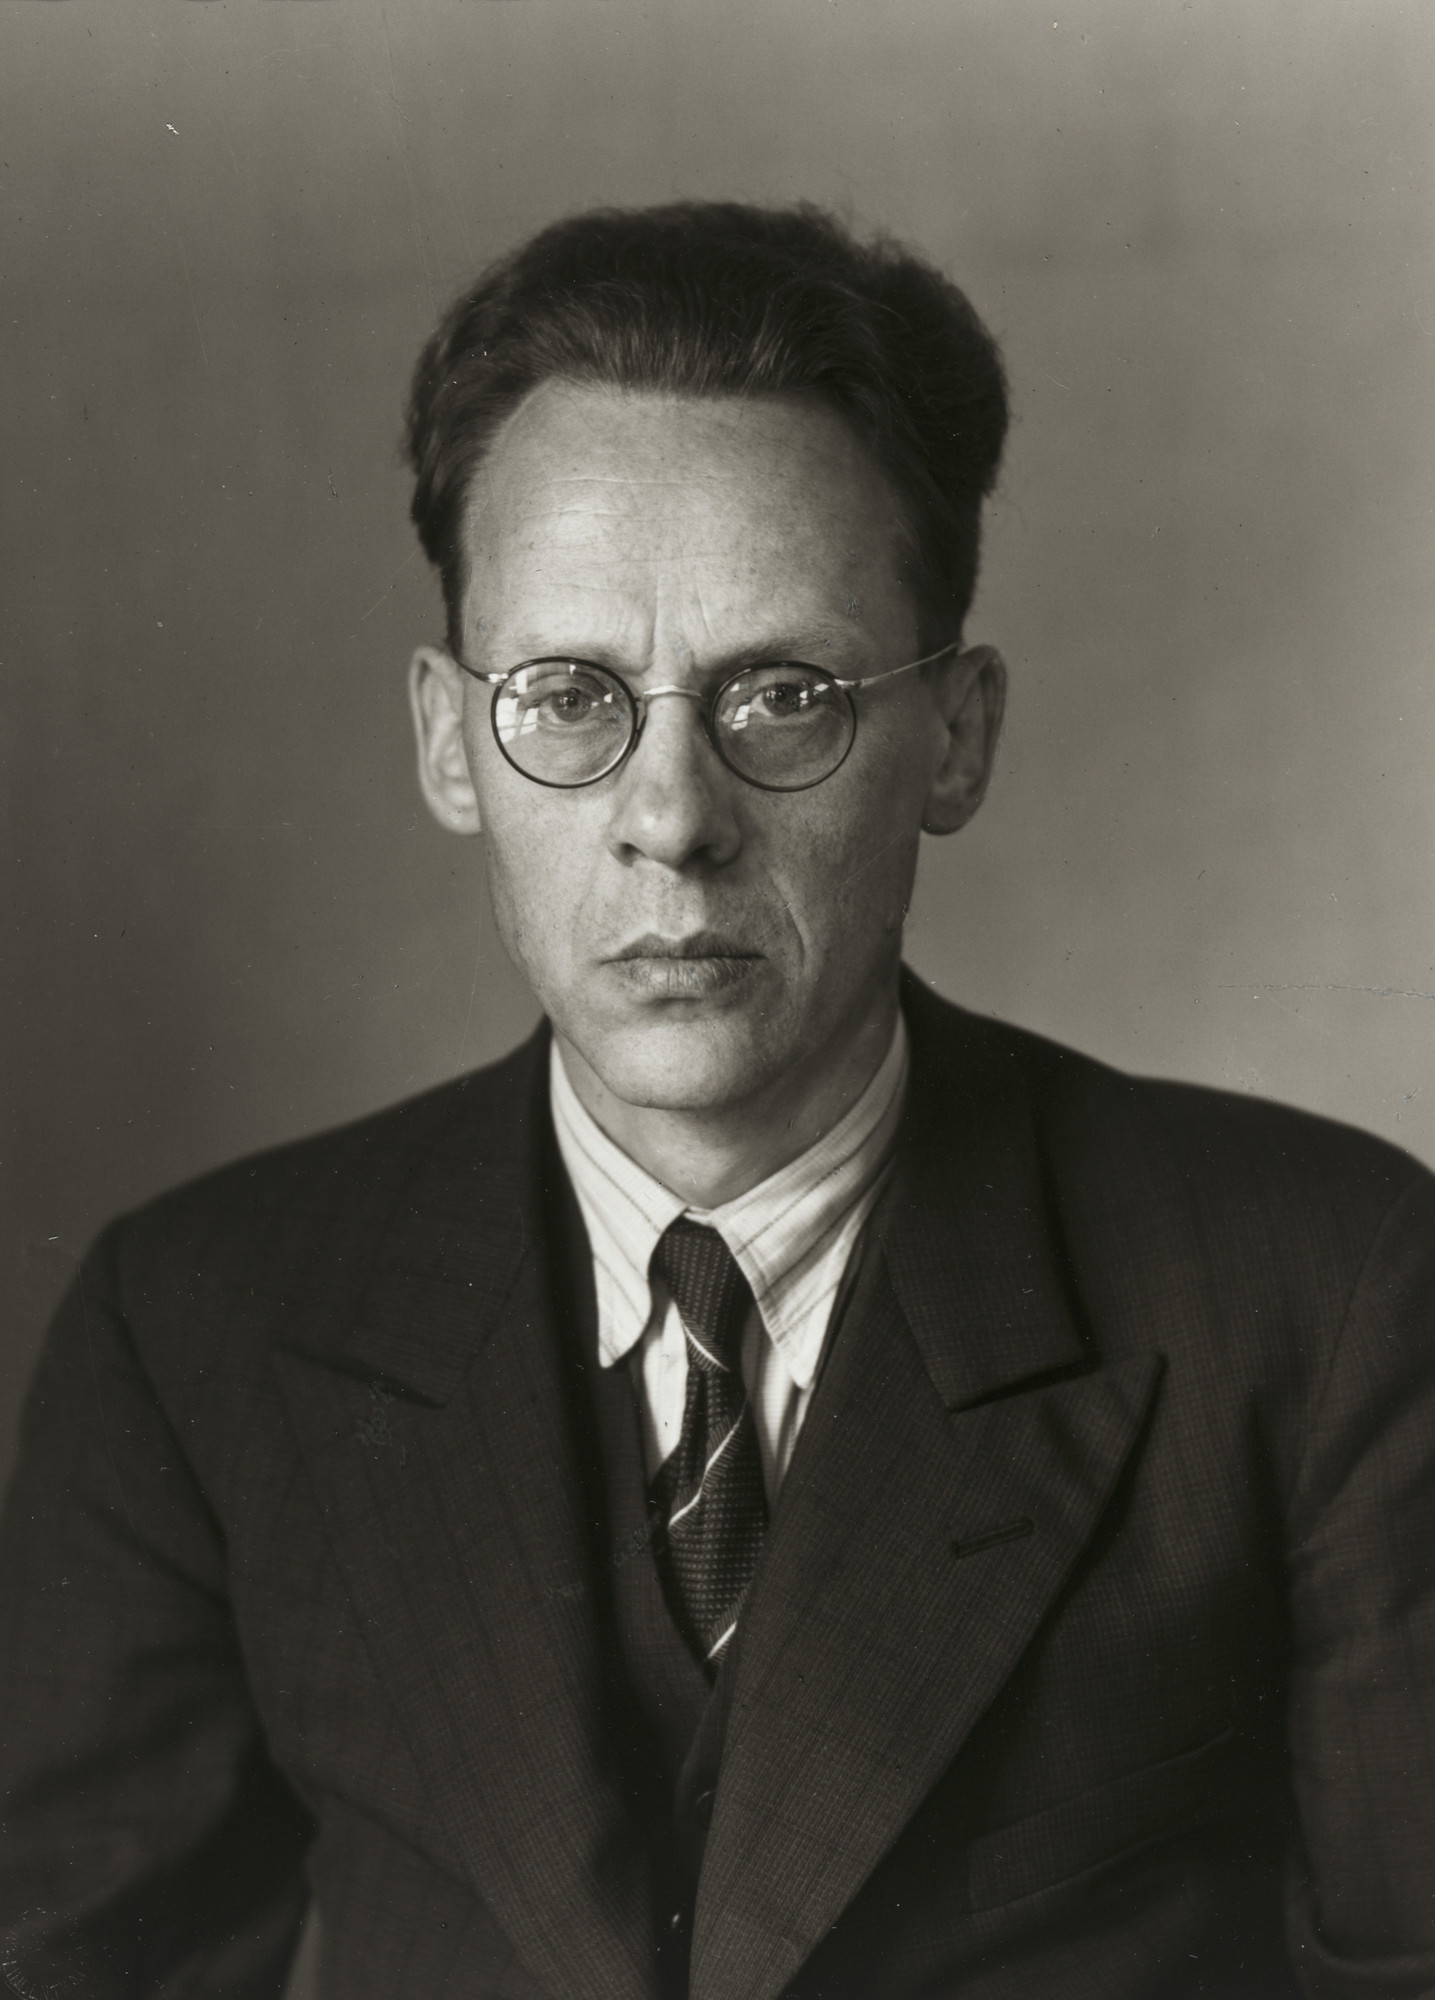 August Sander. Politician and Publisher[Otto Schmidt]. 1930